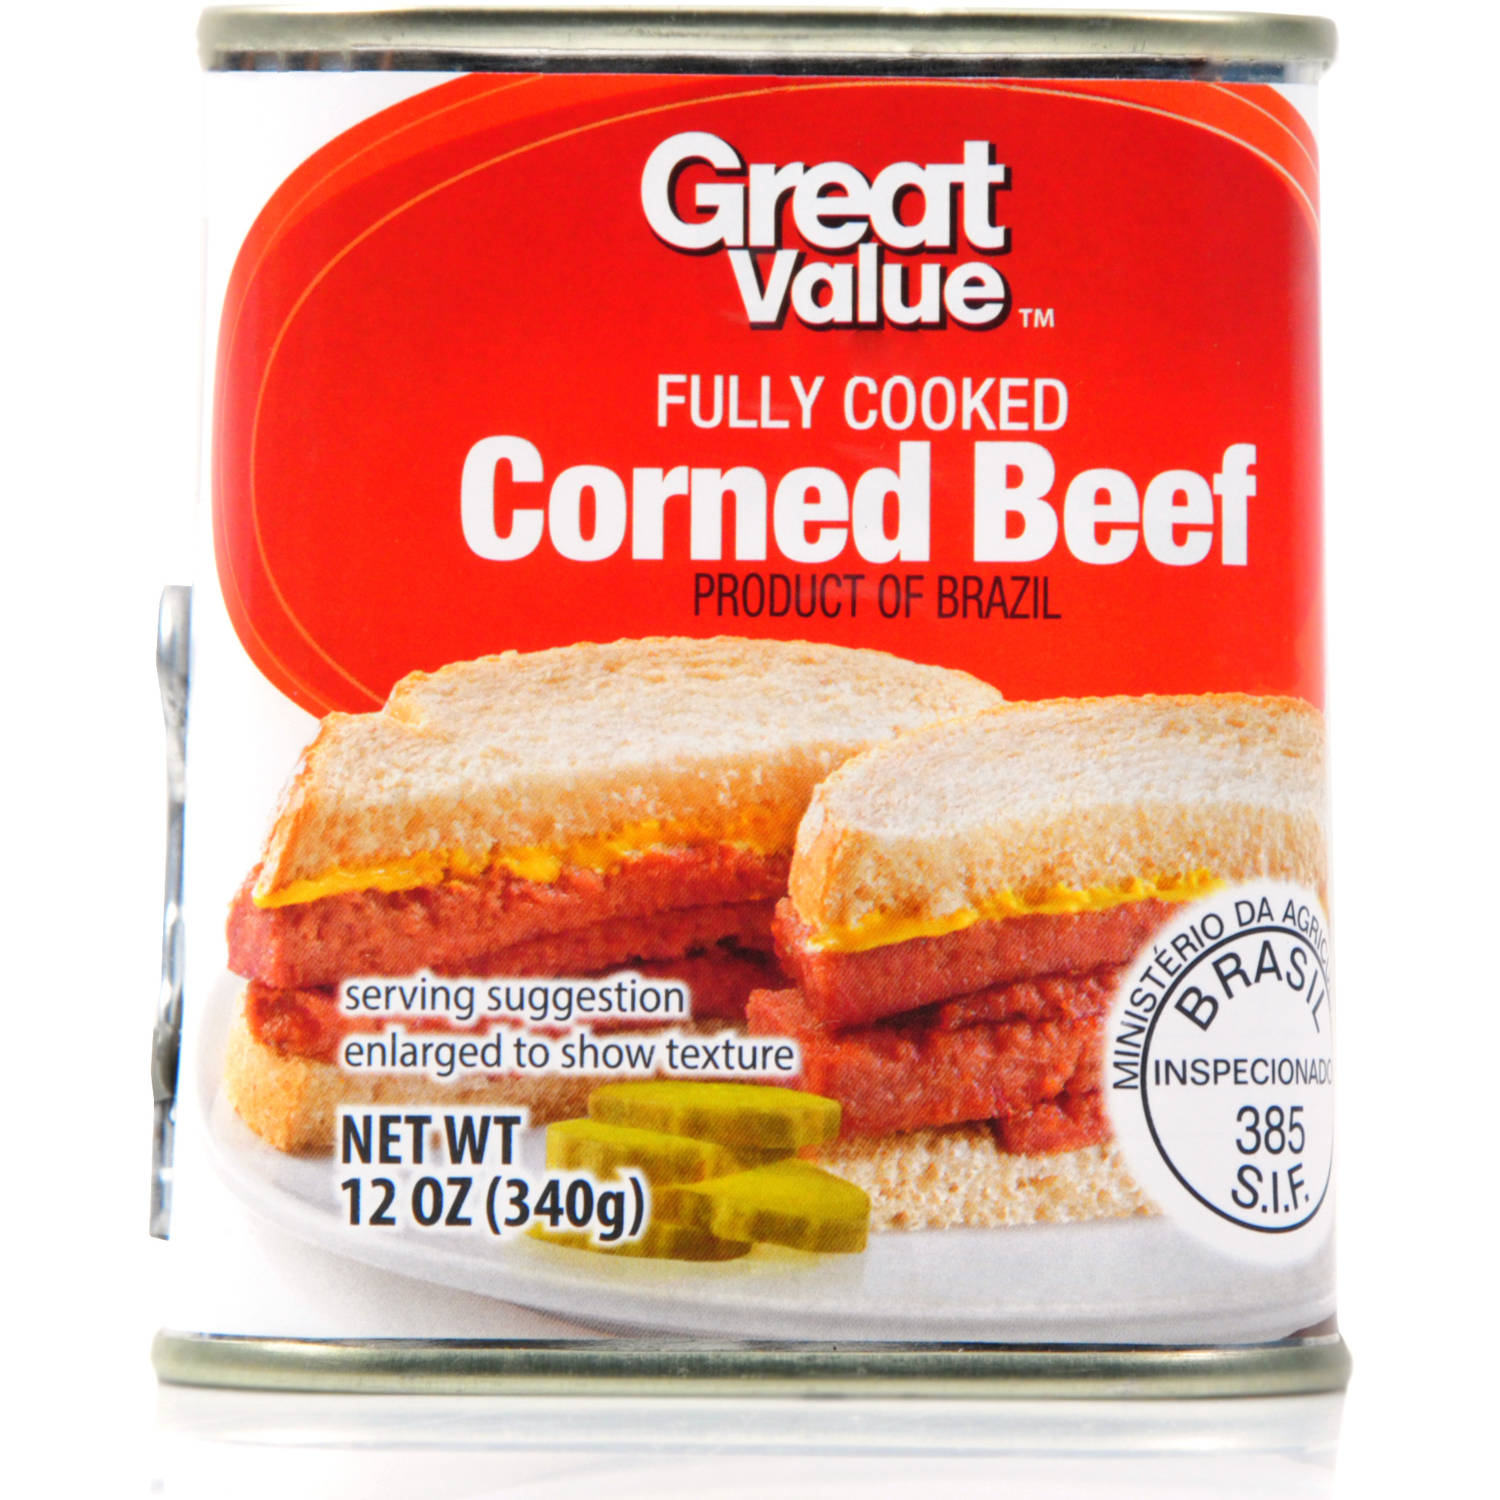 Great Value Corned Beef, 12 oz